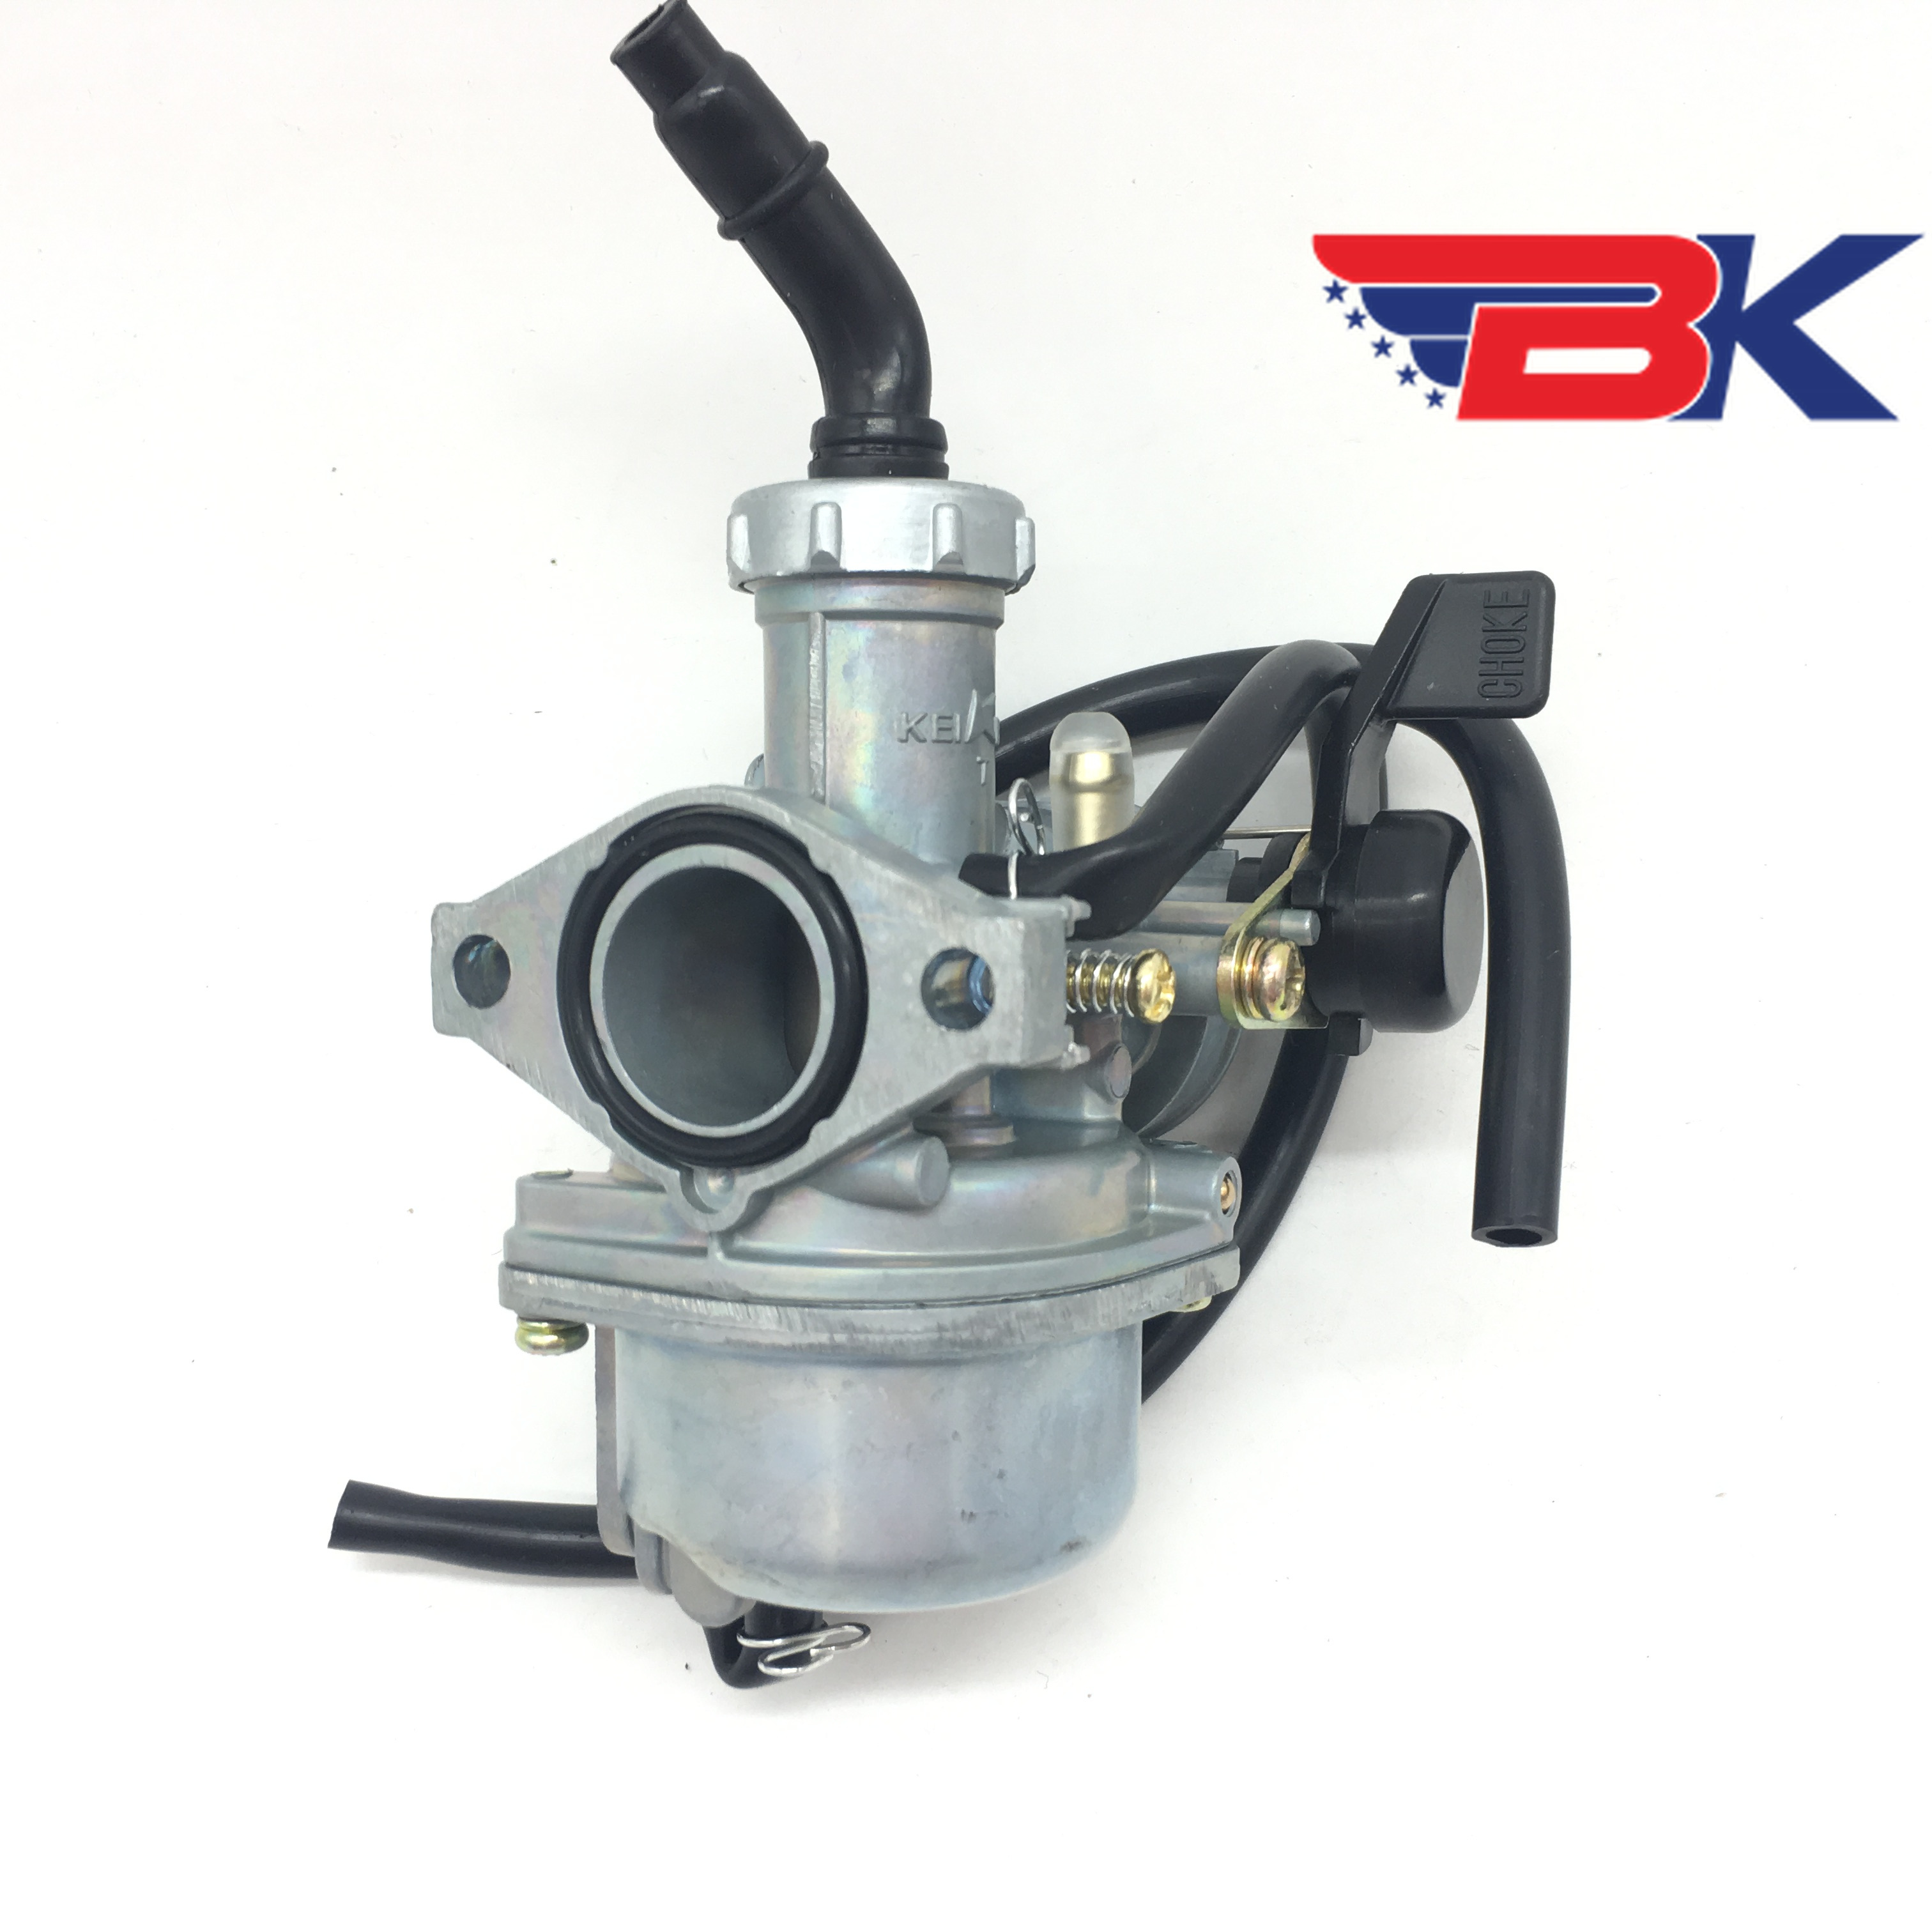 PZ22 22MM Carburetor Carby For Honda XR50 CRF50 XR70 CRF70 Dirt Bike KLX110